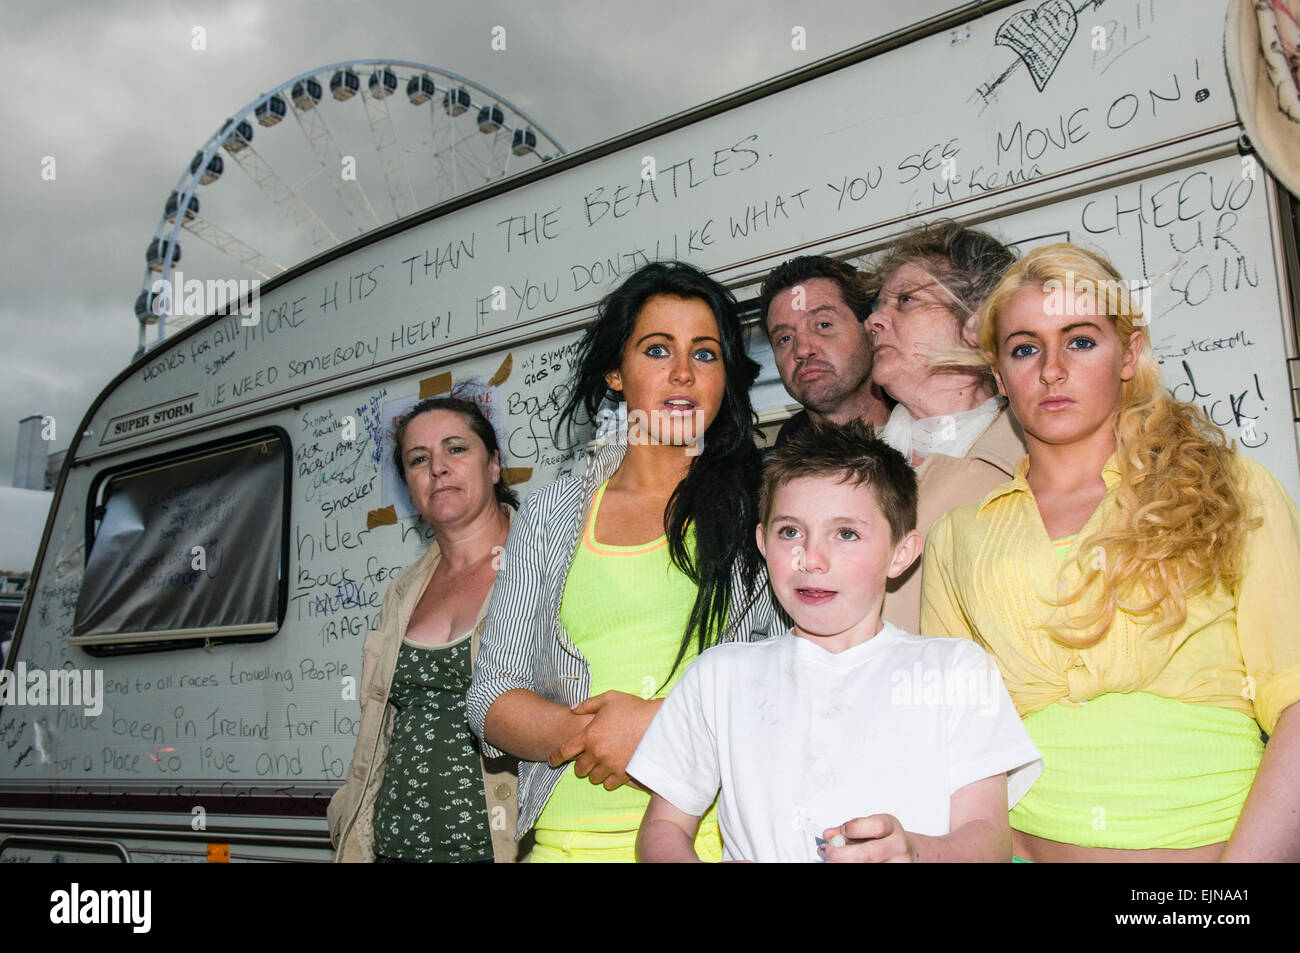 A gypsy traveller family stand outside their caravan, which has been written on with messages of support for their Stock Photo